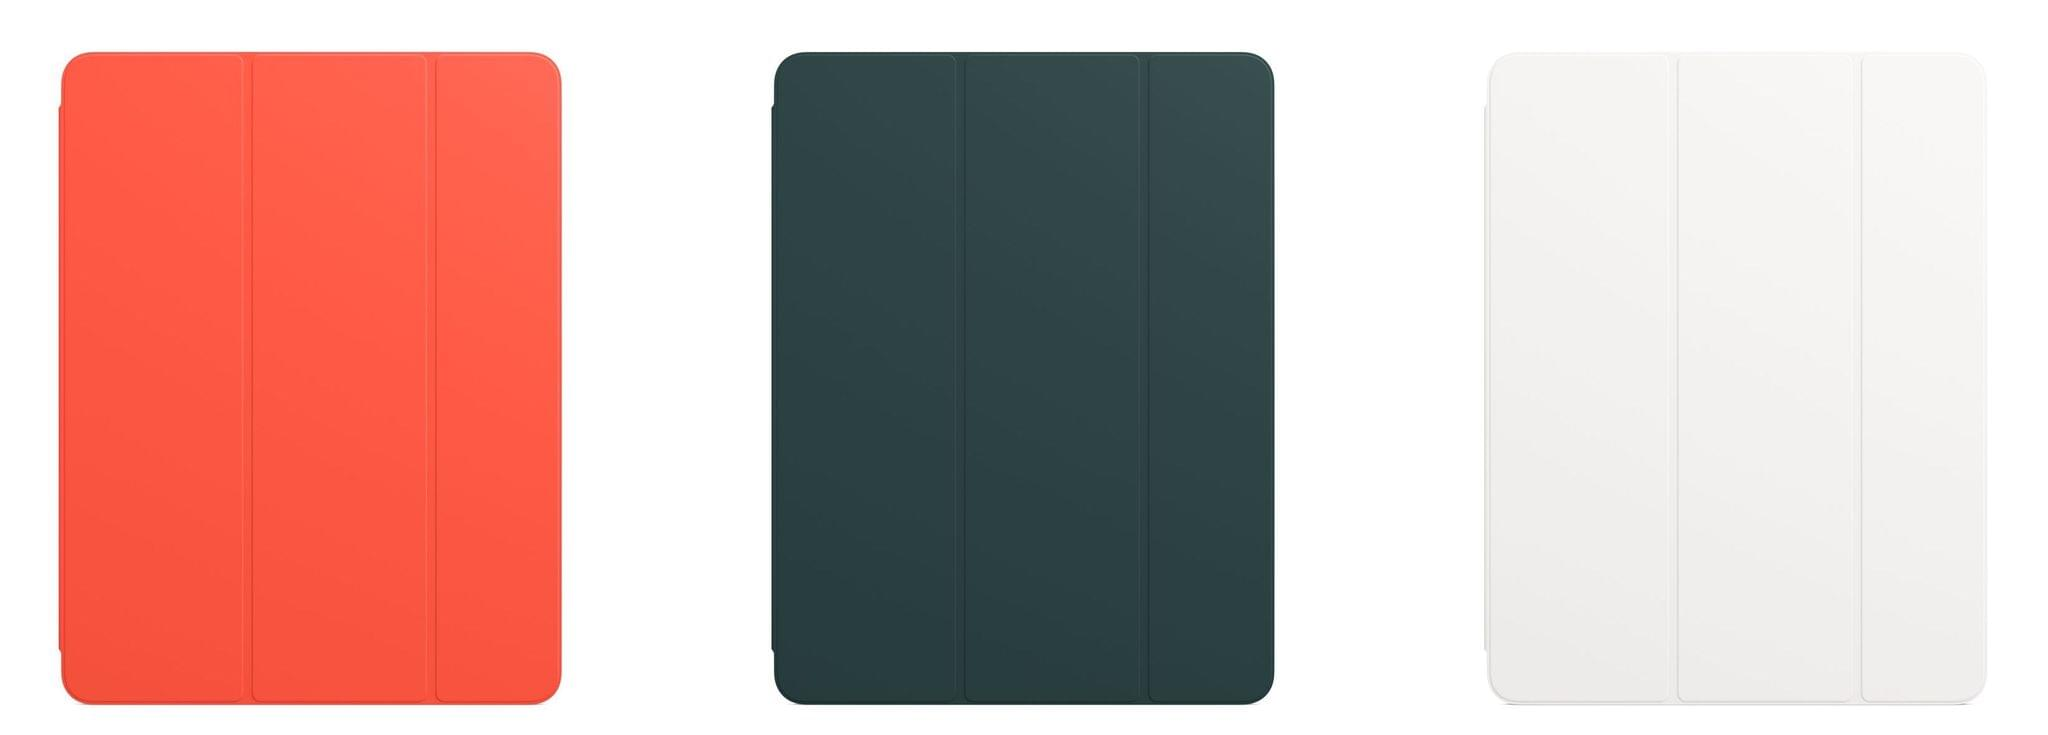 The updated Smart Folio colors.